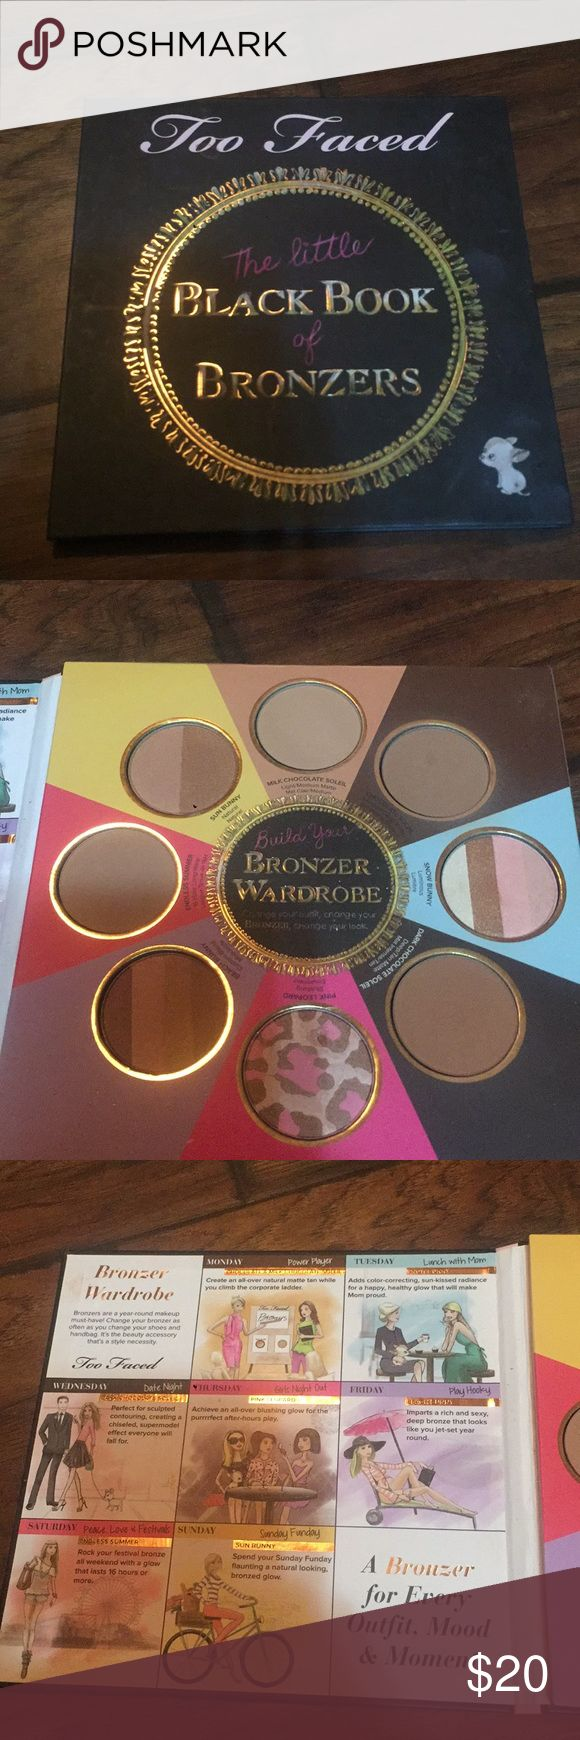 Too faced the little black book of bronzers Only used two colors a couple times as seen in pictures Too Faced Makeup Bronzer